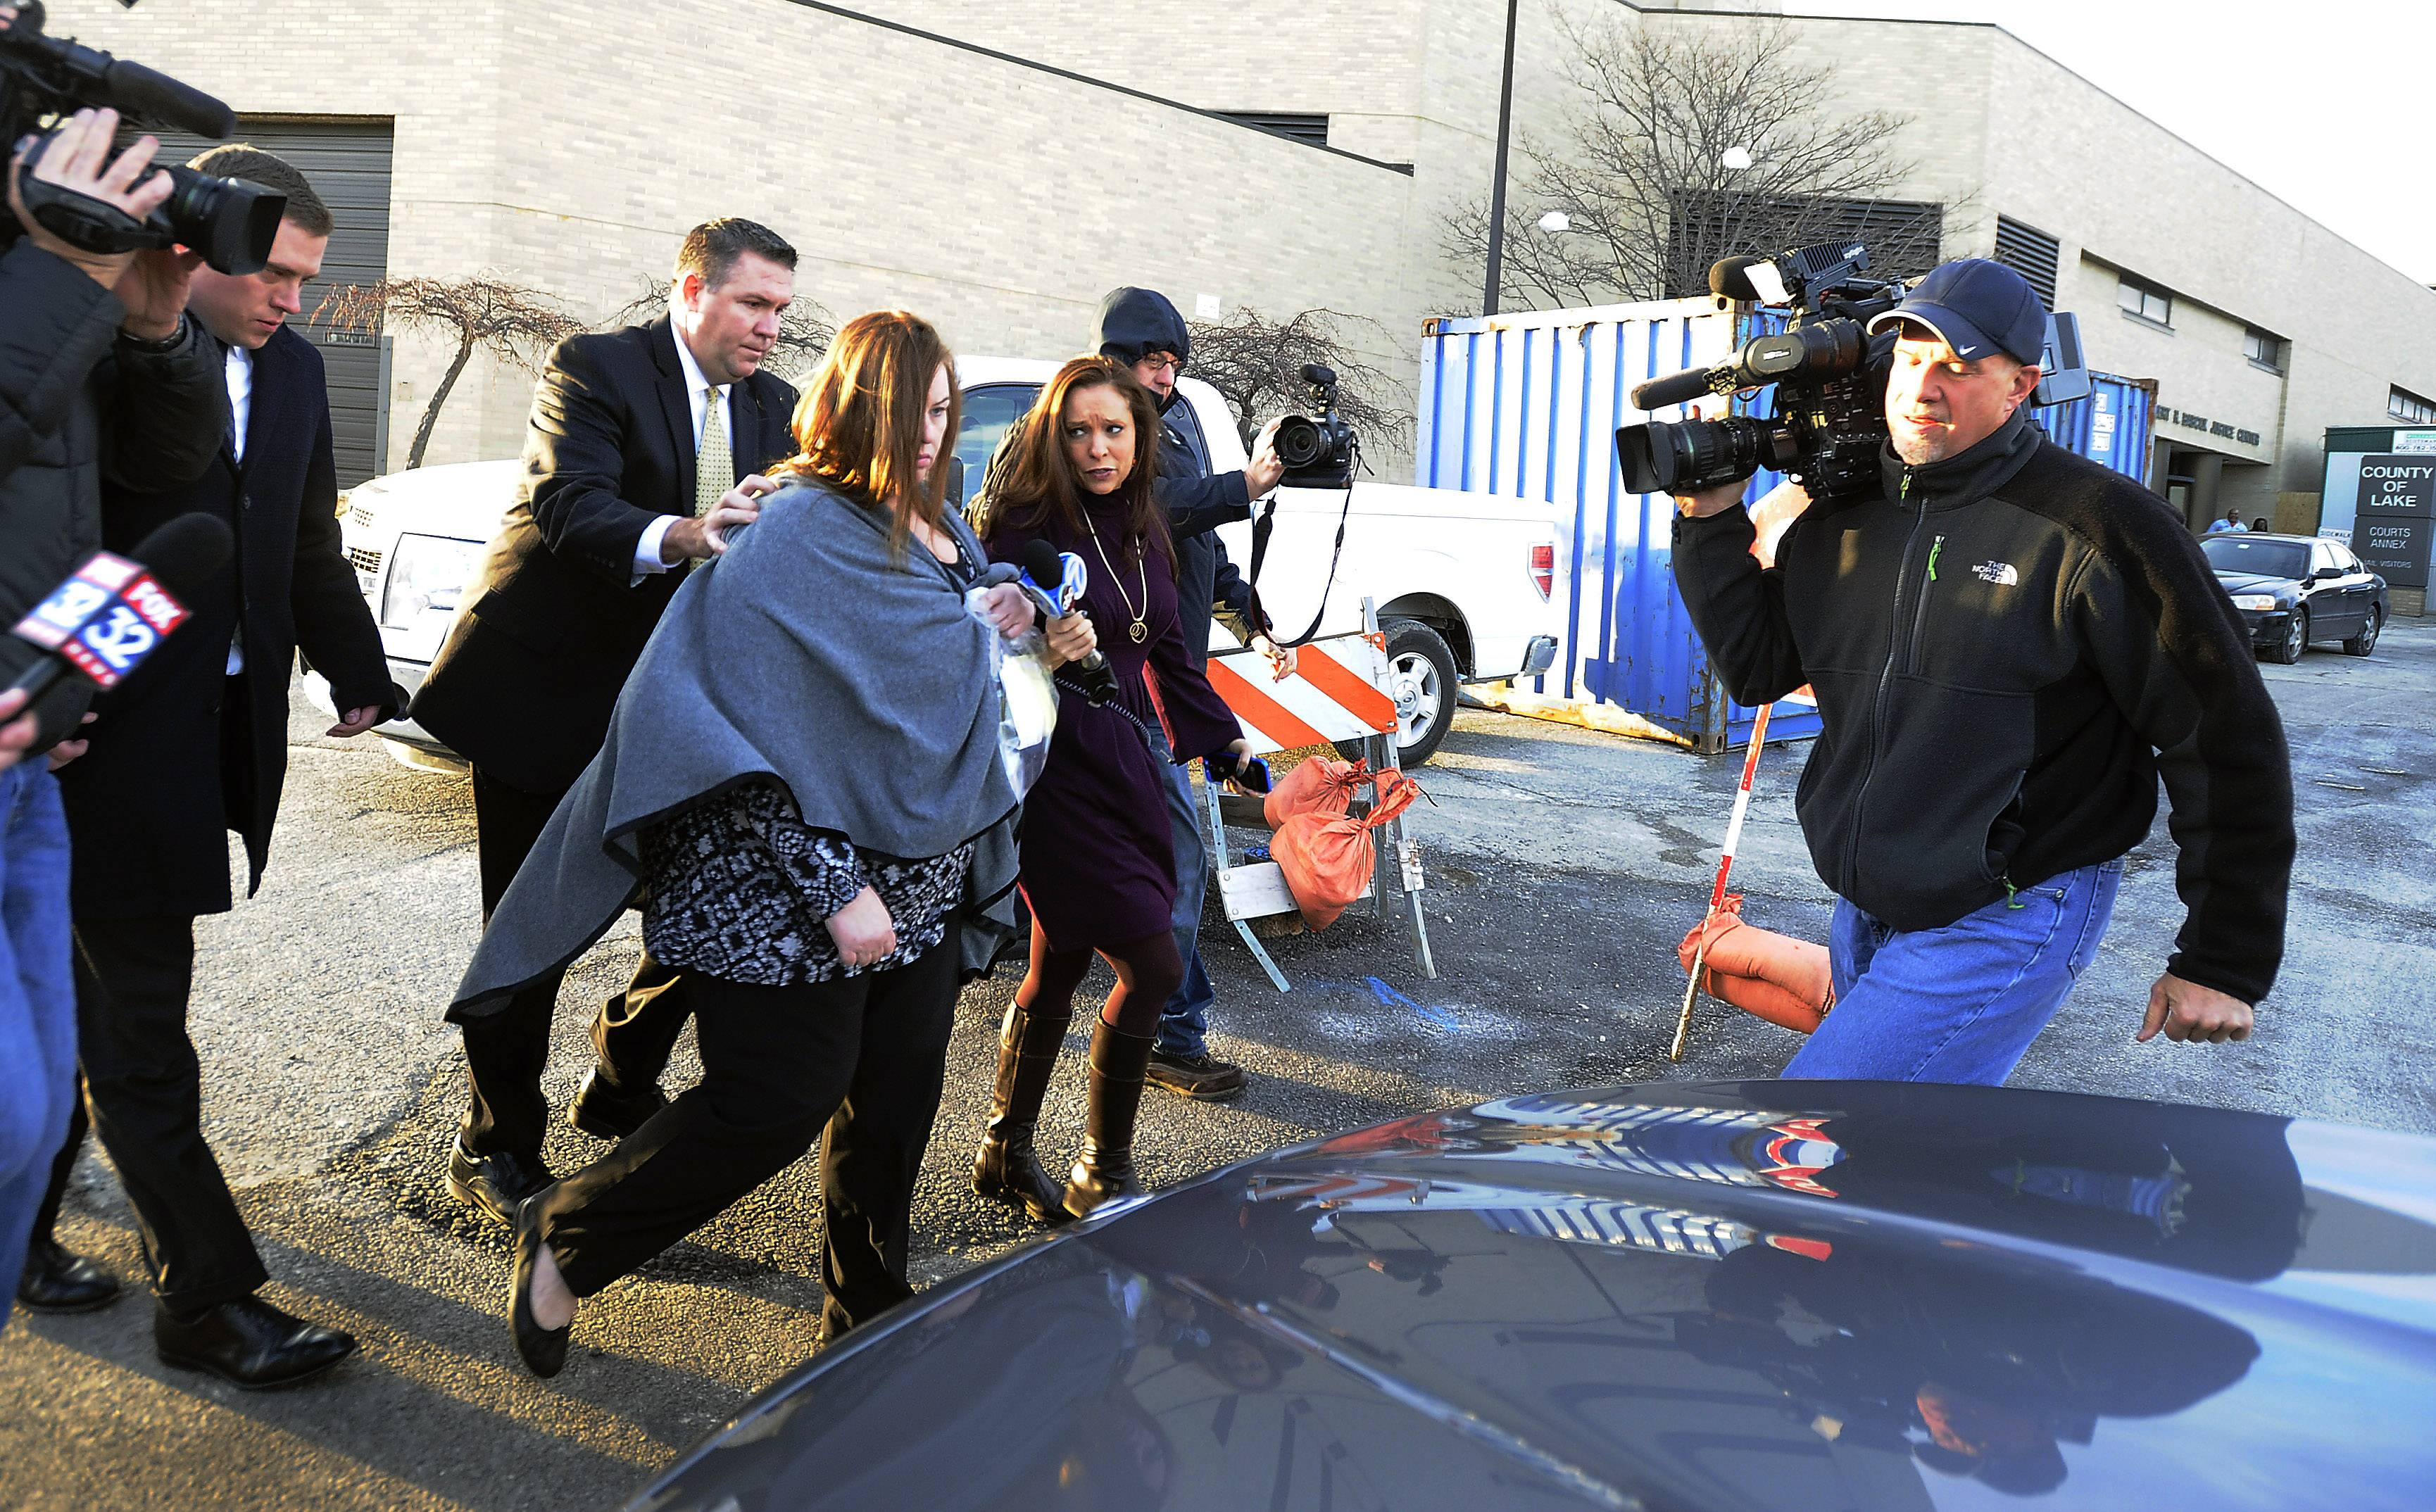 Melodie Gliniewicz is pursued by news reporters as she rushes to her lawyer's car outside the Lake County sheriff's office in Waukegan on Wednesday.